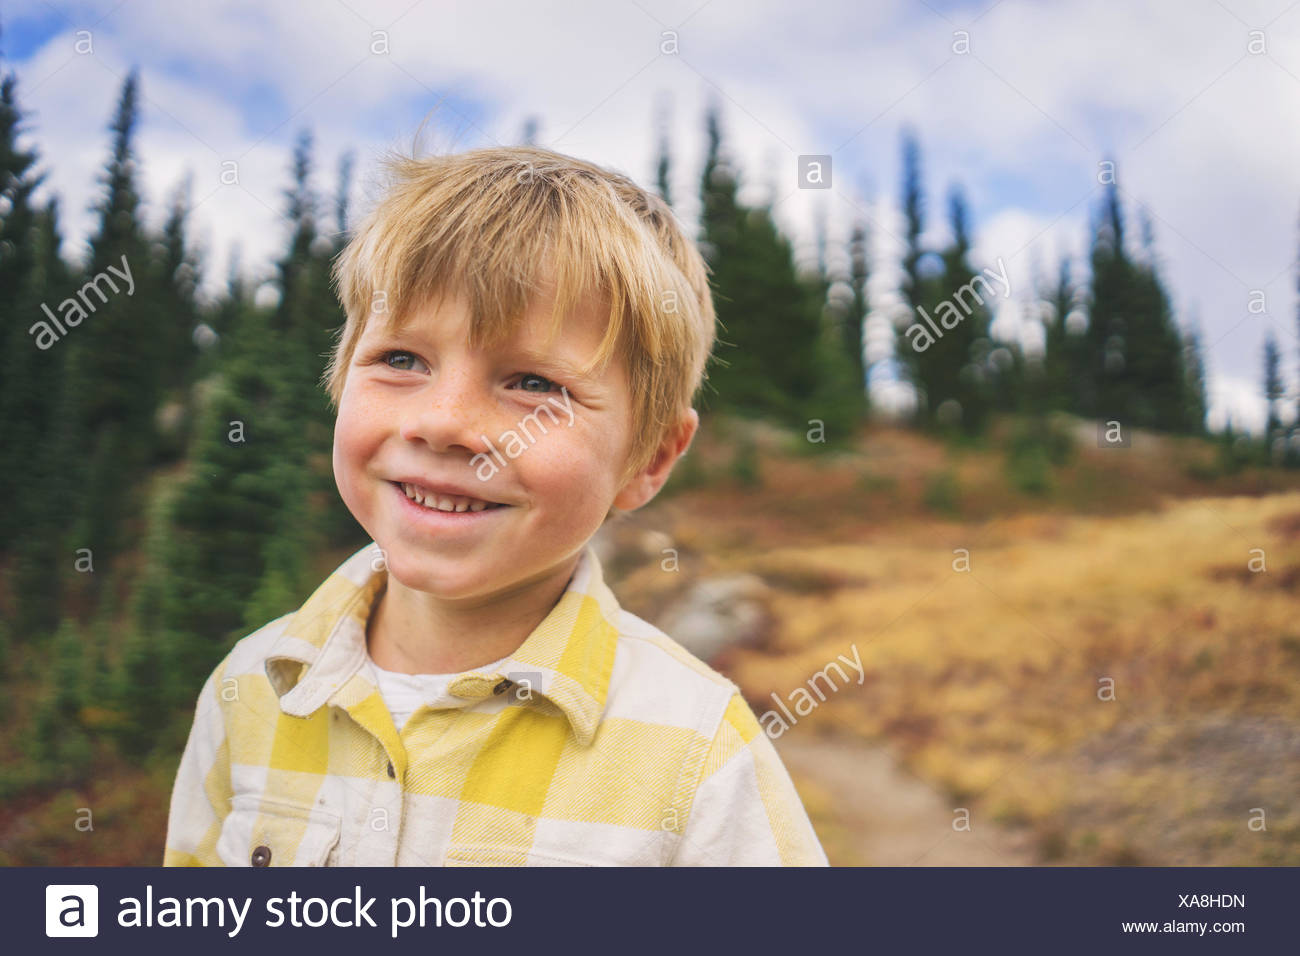 Portrait of a smiling boy outdoors - Stock Image